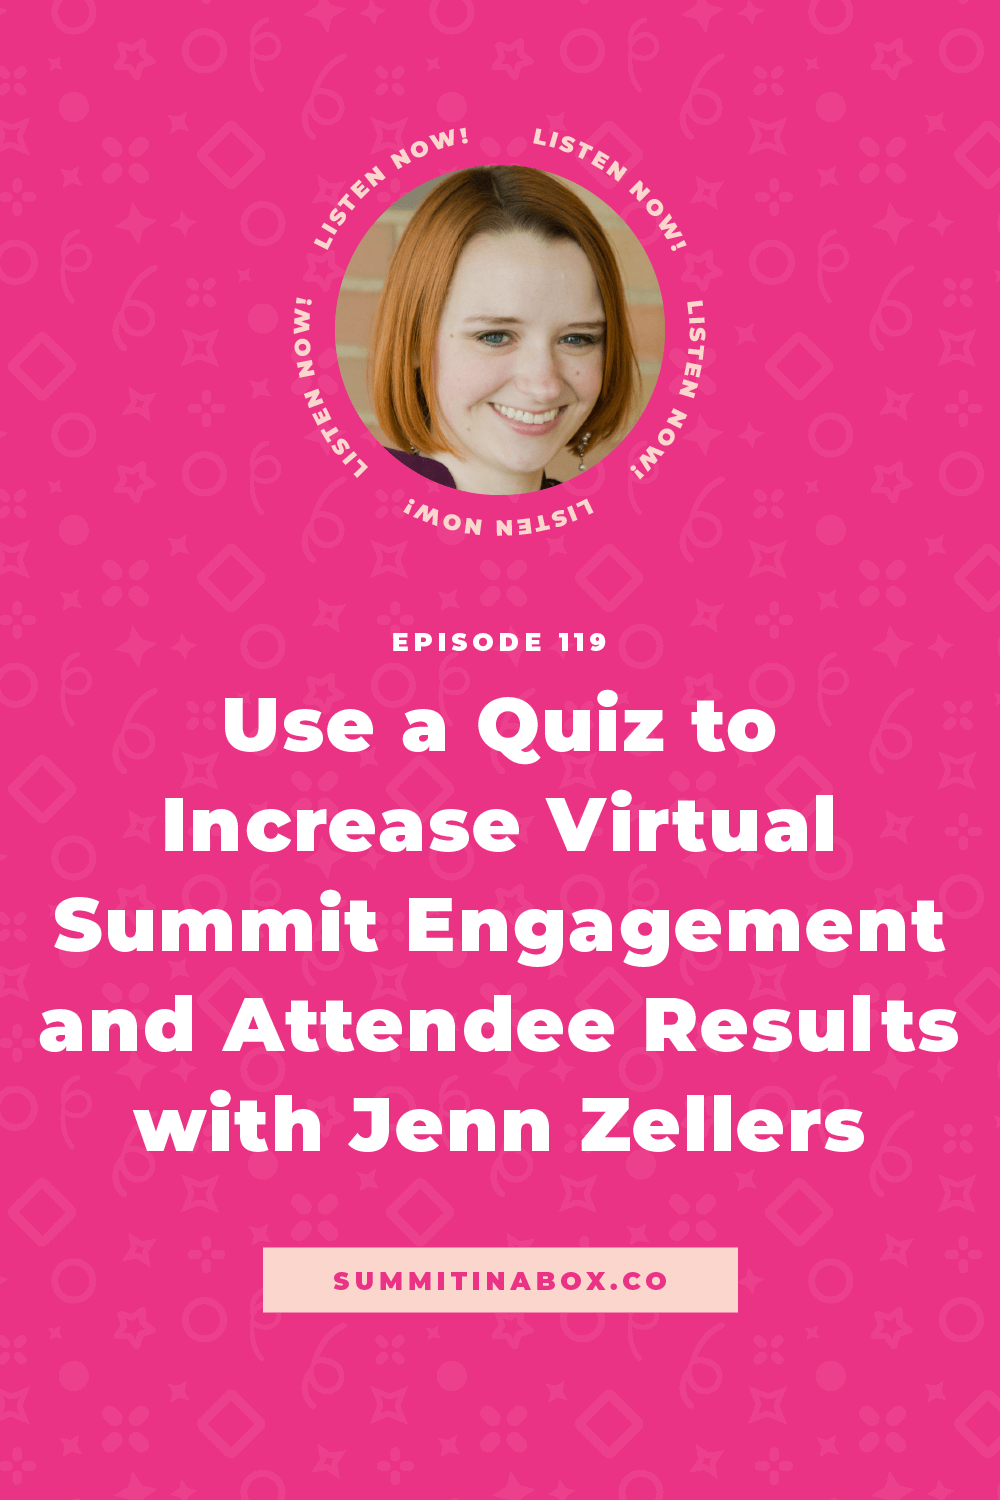 Here's how to use a simple quiz to segment your virtual summit presentations and increase attendee engagement and results. Plus, they're just plain fun!